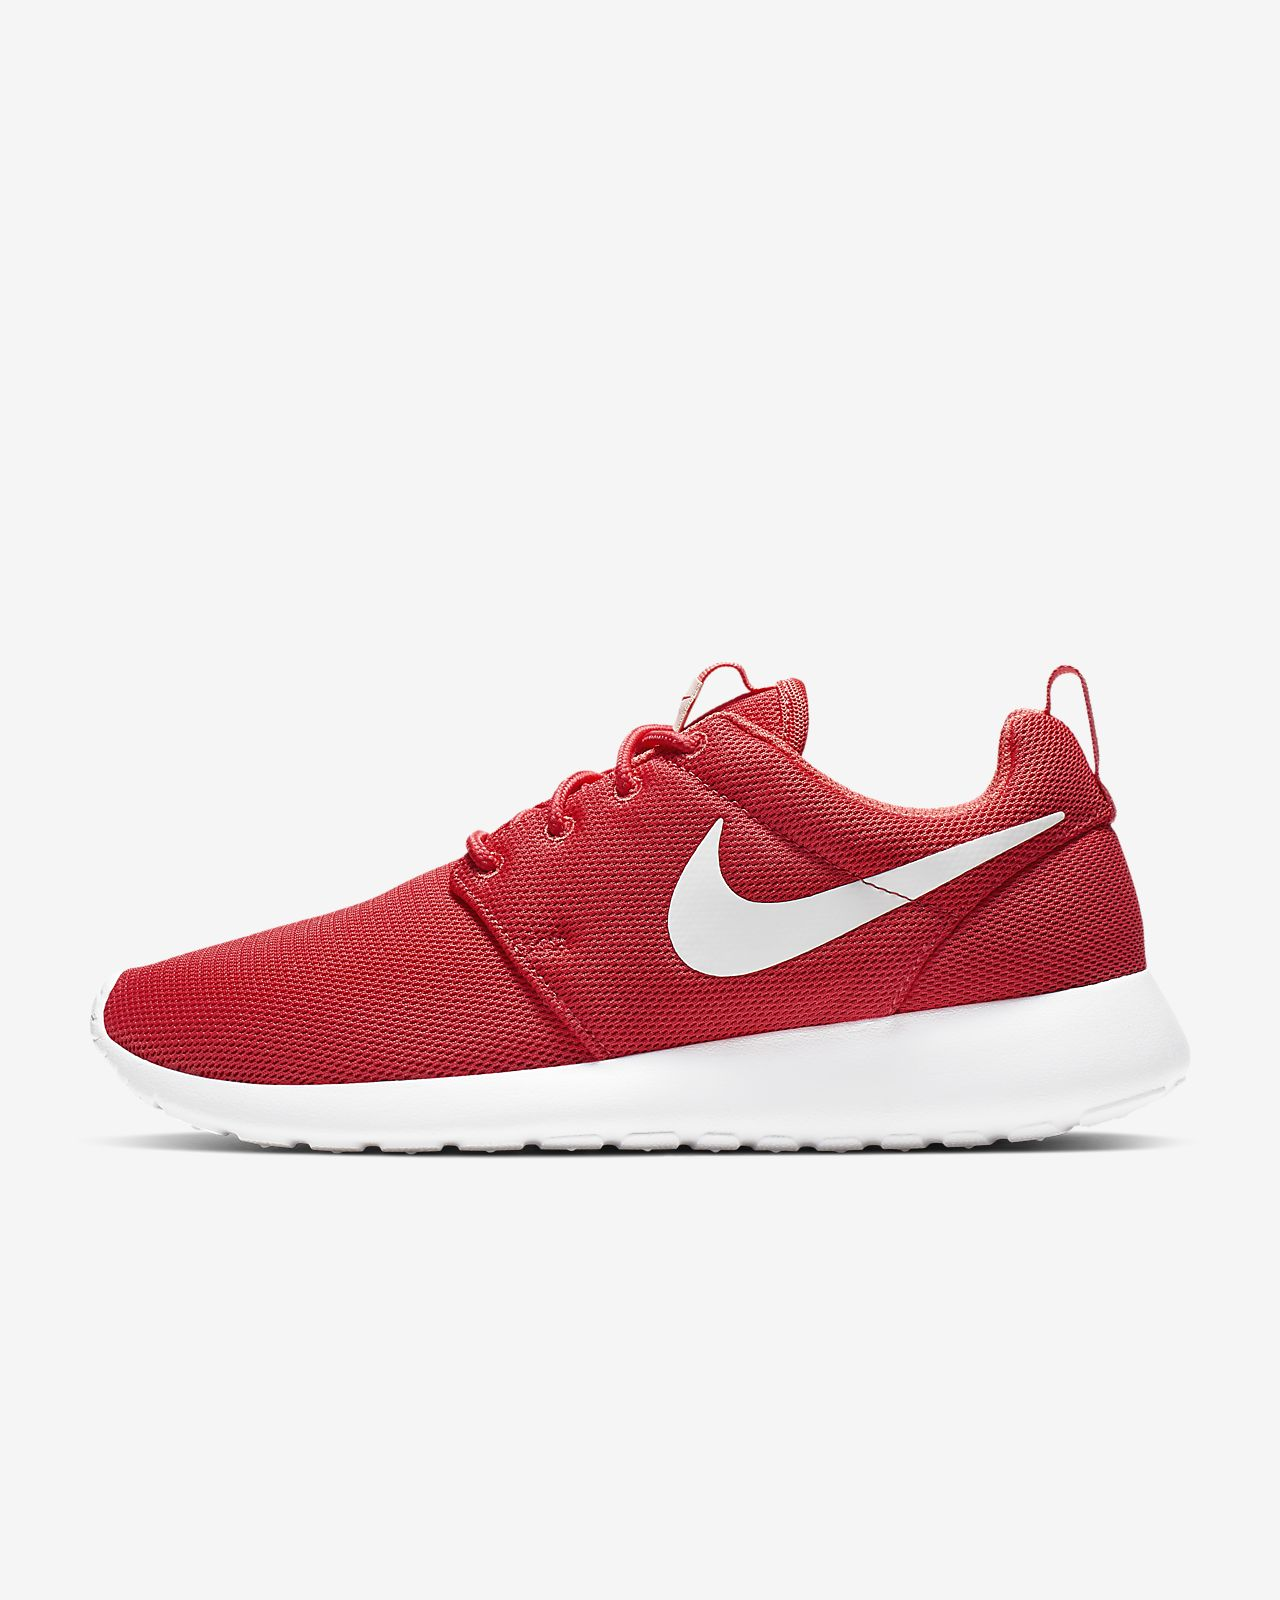 b189fa76c99b Low Resolution Nike Roshe One Women s Shoe Nike Roshe One Women s Shoe